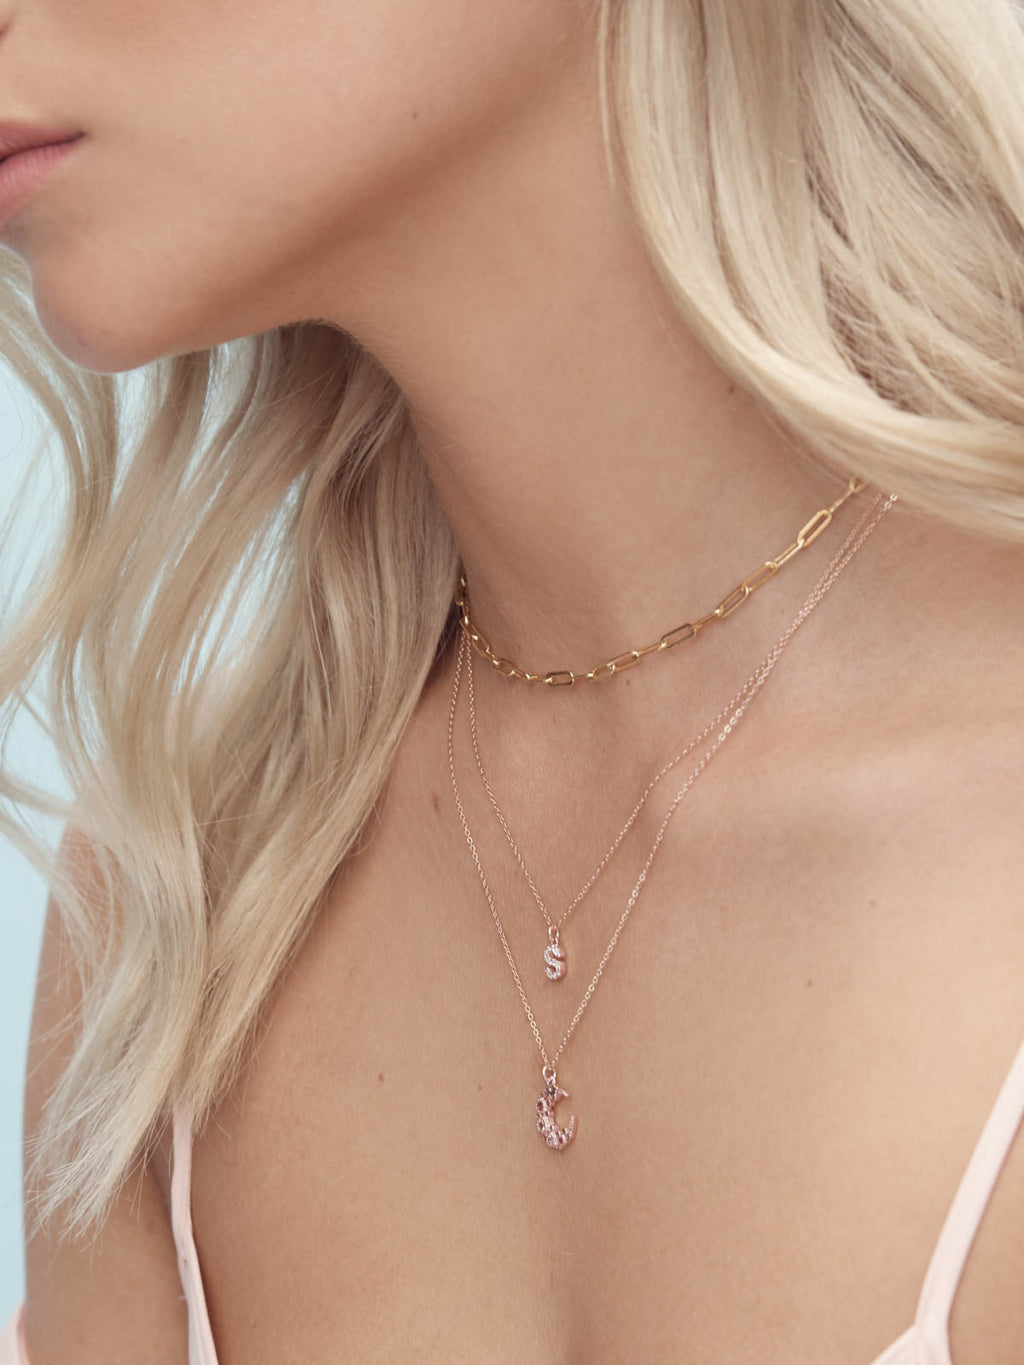 Rose Gold Chain with Pink Cluster Moon CZ Charm Necklace  by The Faint Hearted Jewelry